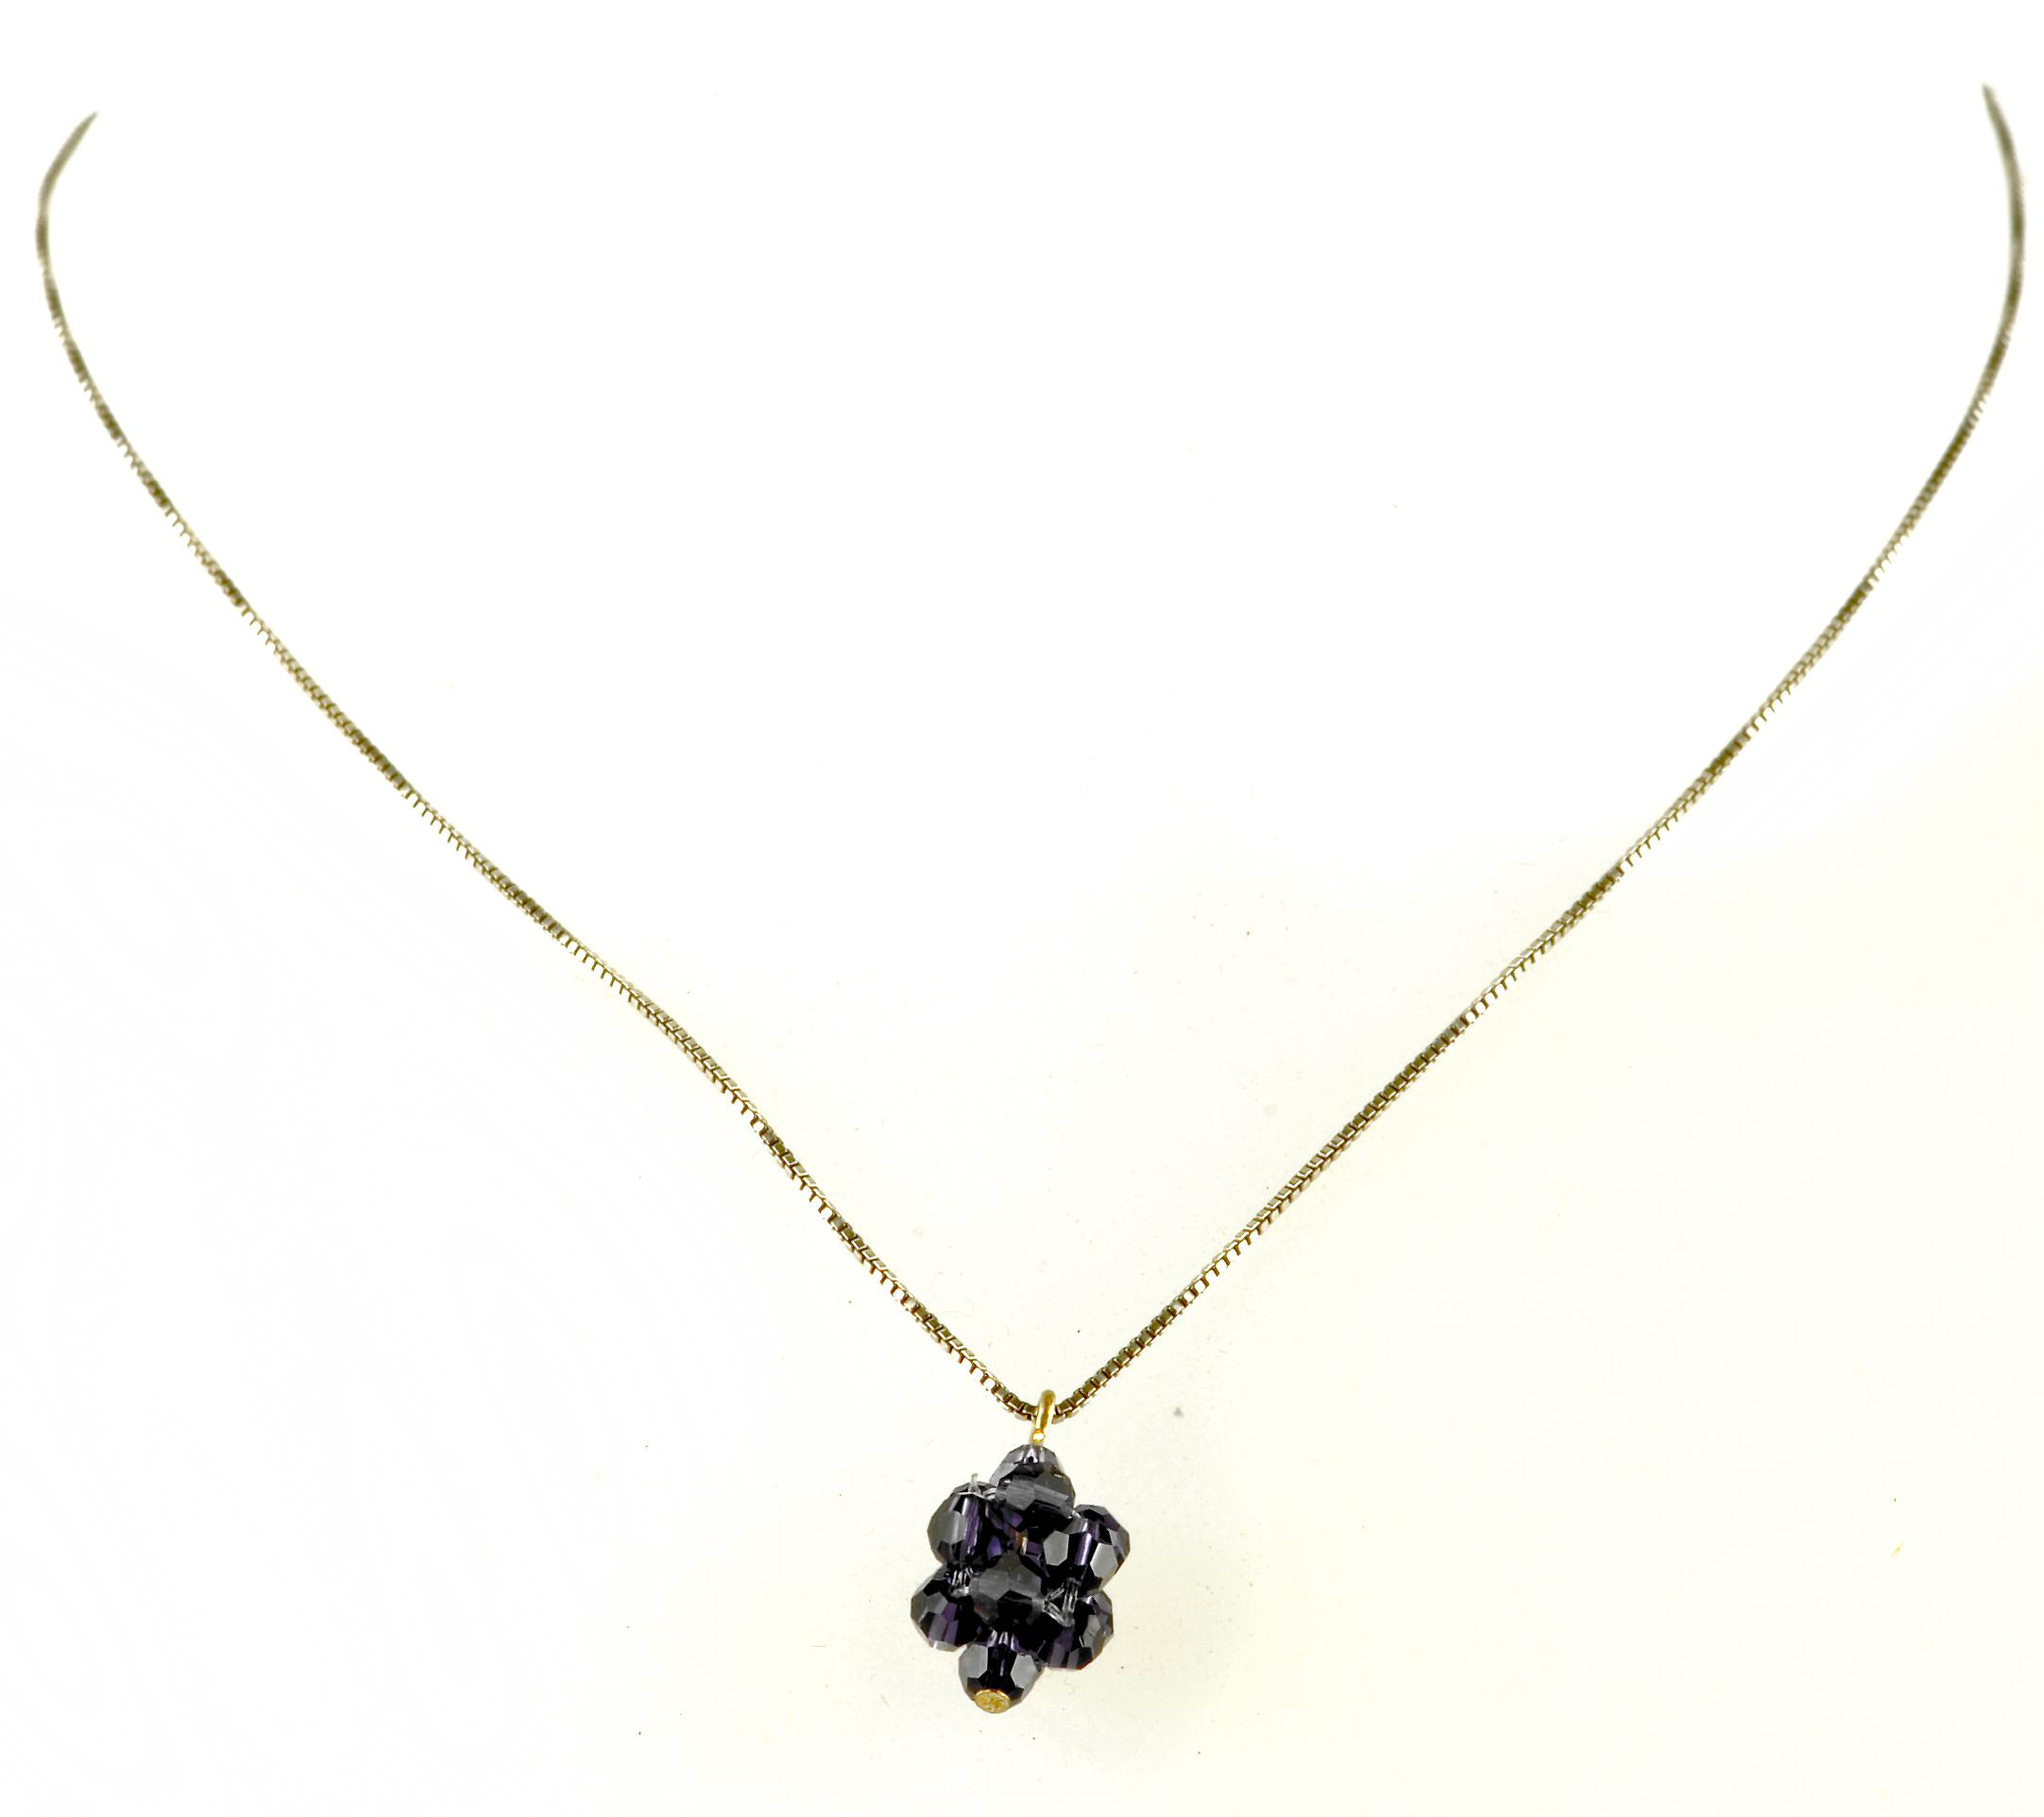 Waooh - Fashion Jewellery - WJ0292 - Necklace with Swarovski Strass Dark Purple - Color Silver Chain